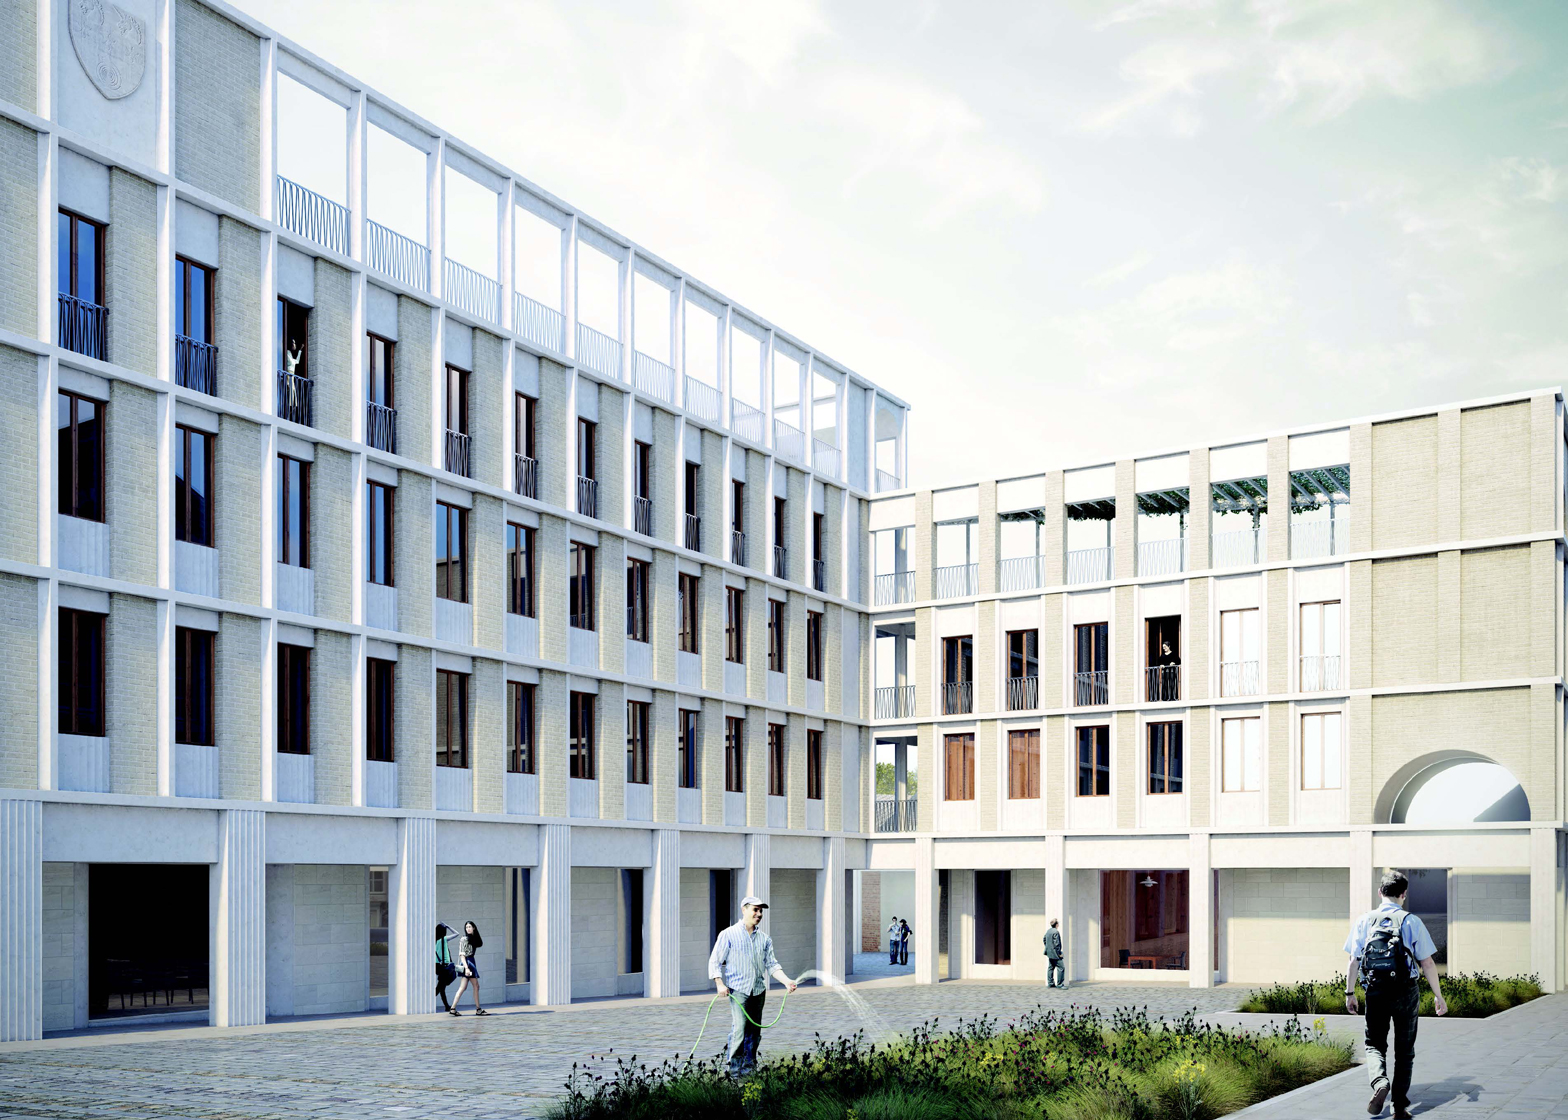 DRDH Architects' concept for an extension to St Hilda's College in Oxford